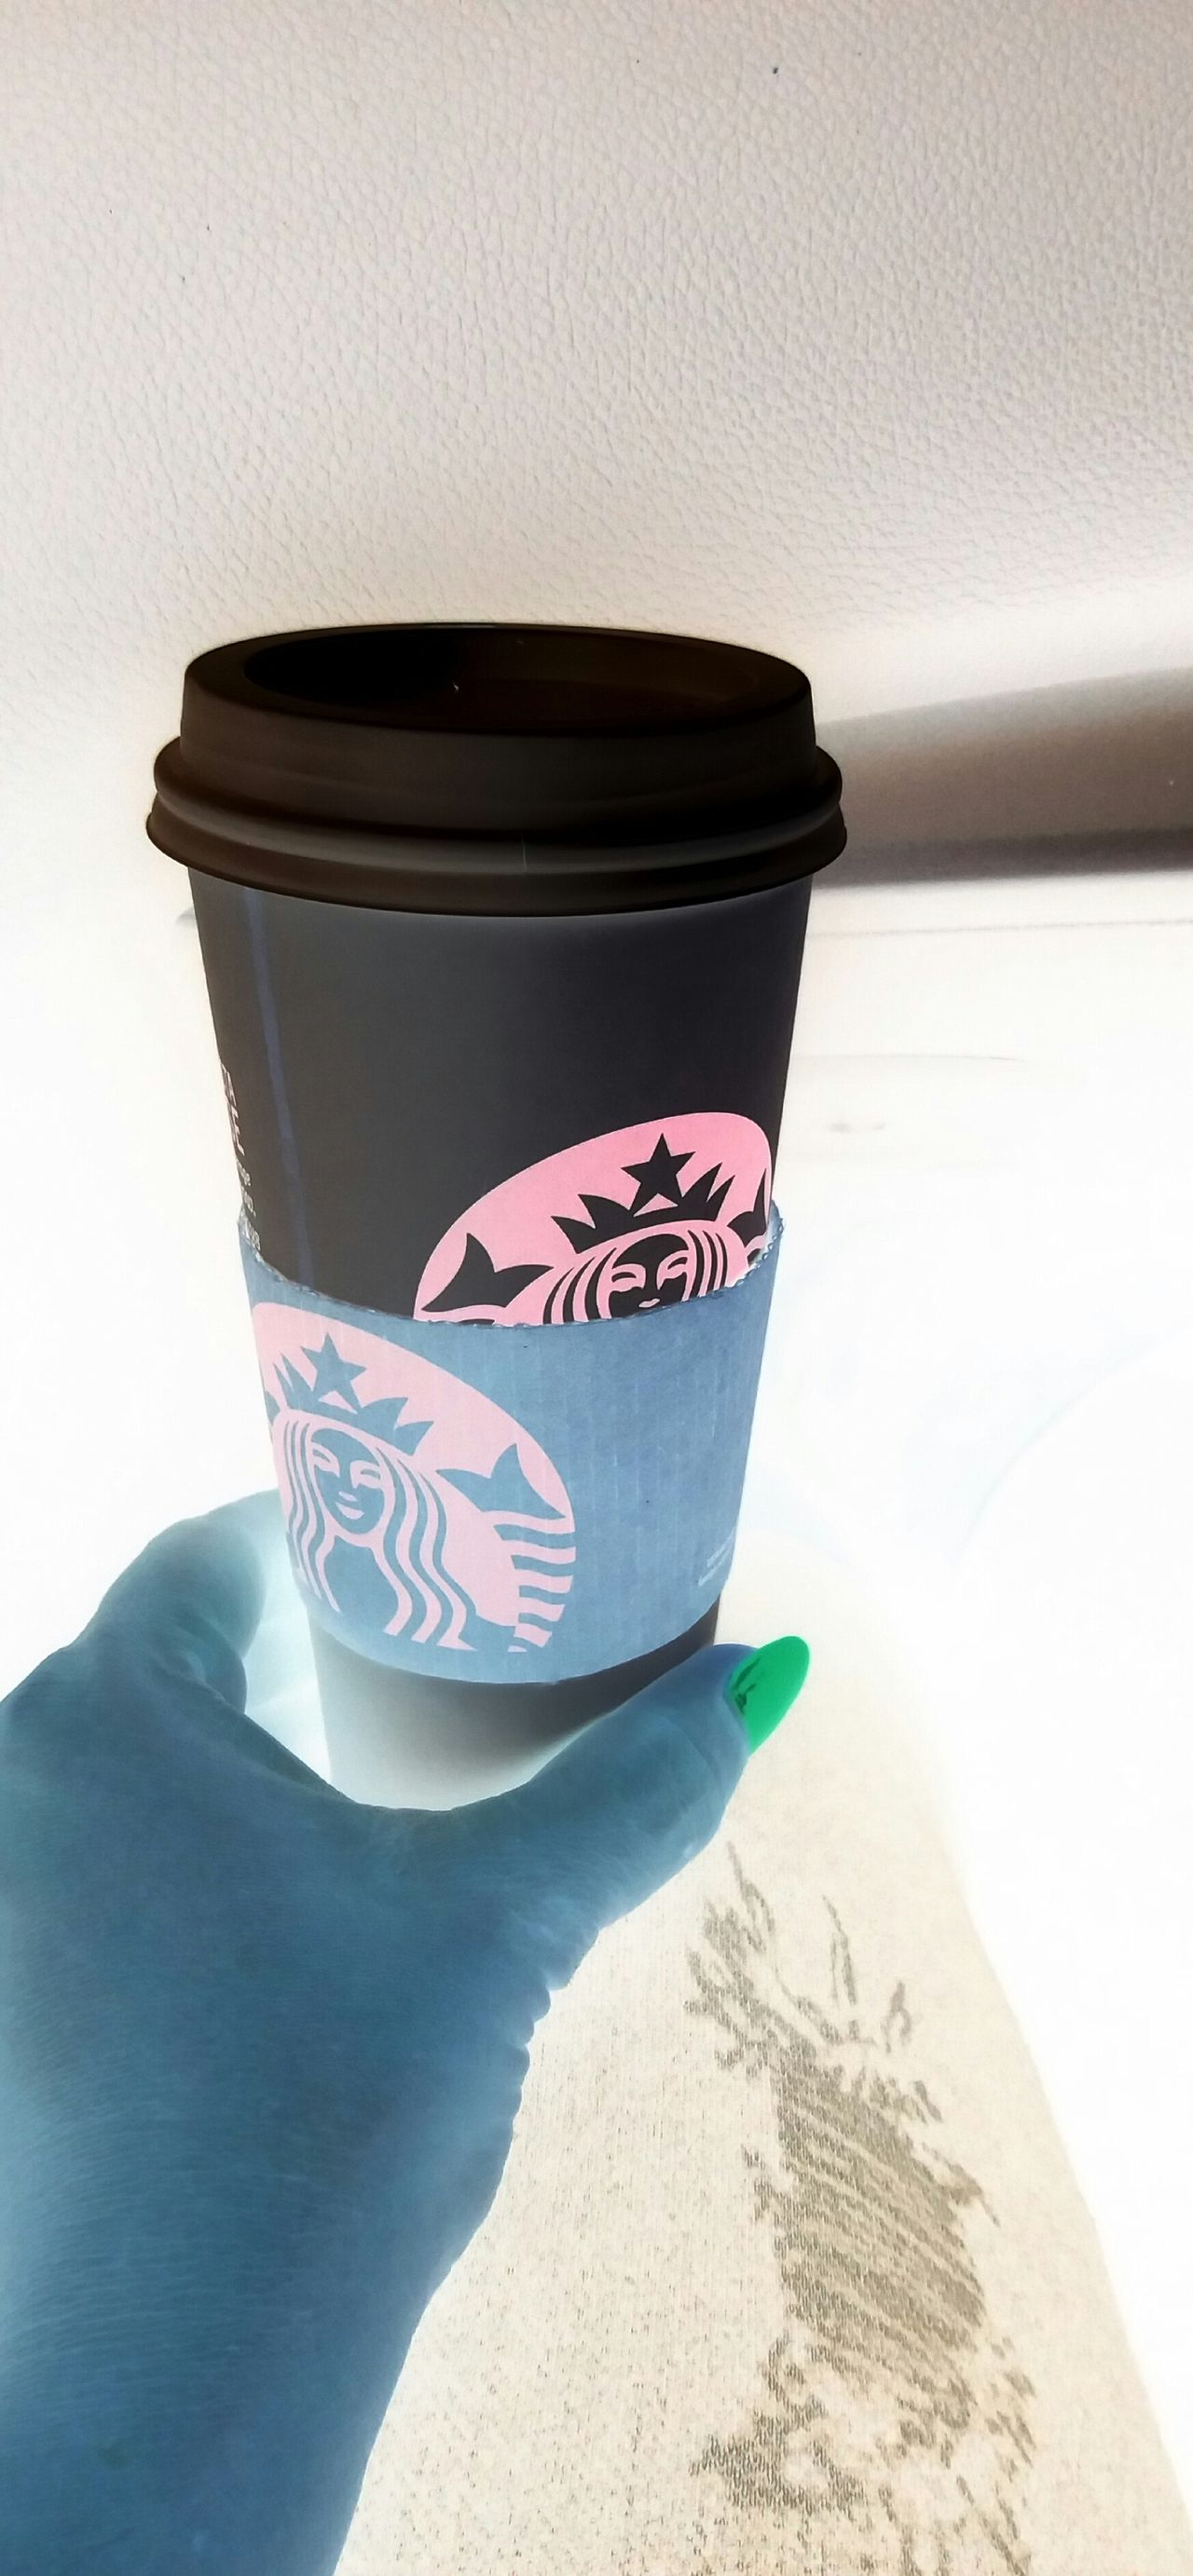 Starbucks ❤ Gives Me Life Coffee Cup Negative Effect Hand Nail Art Drink Coffee Time